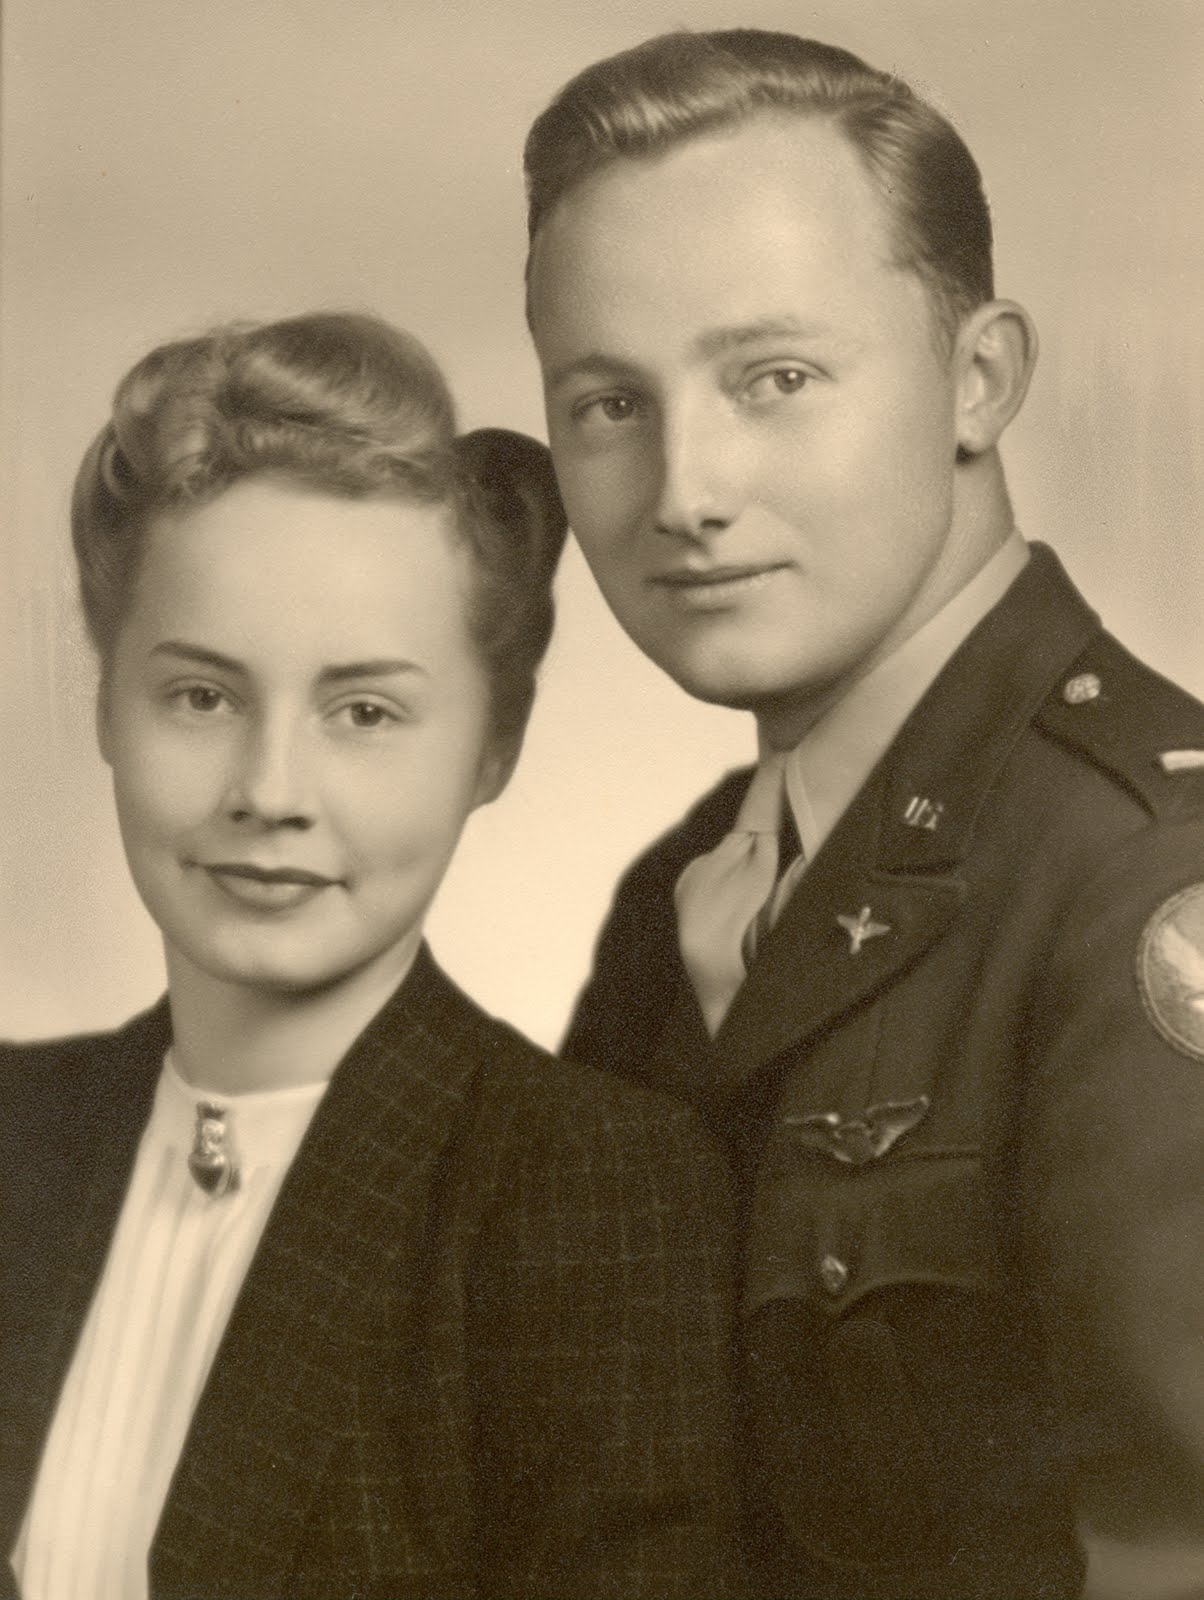 Mom & Dad WWII Photo B&W